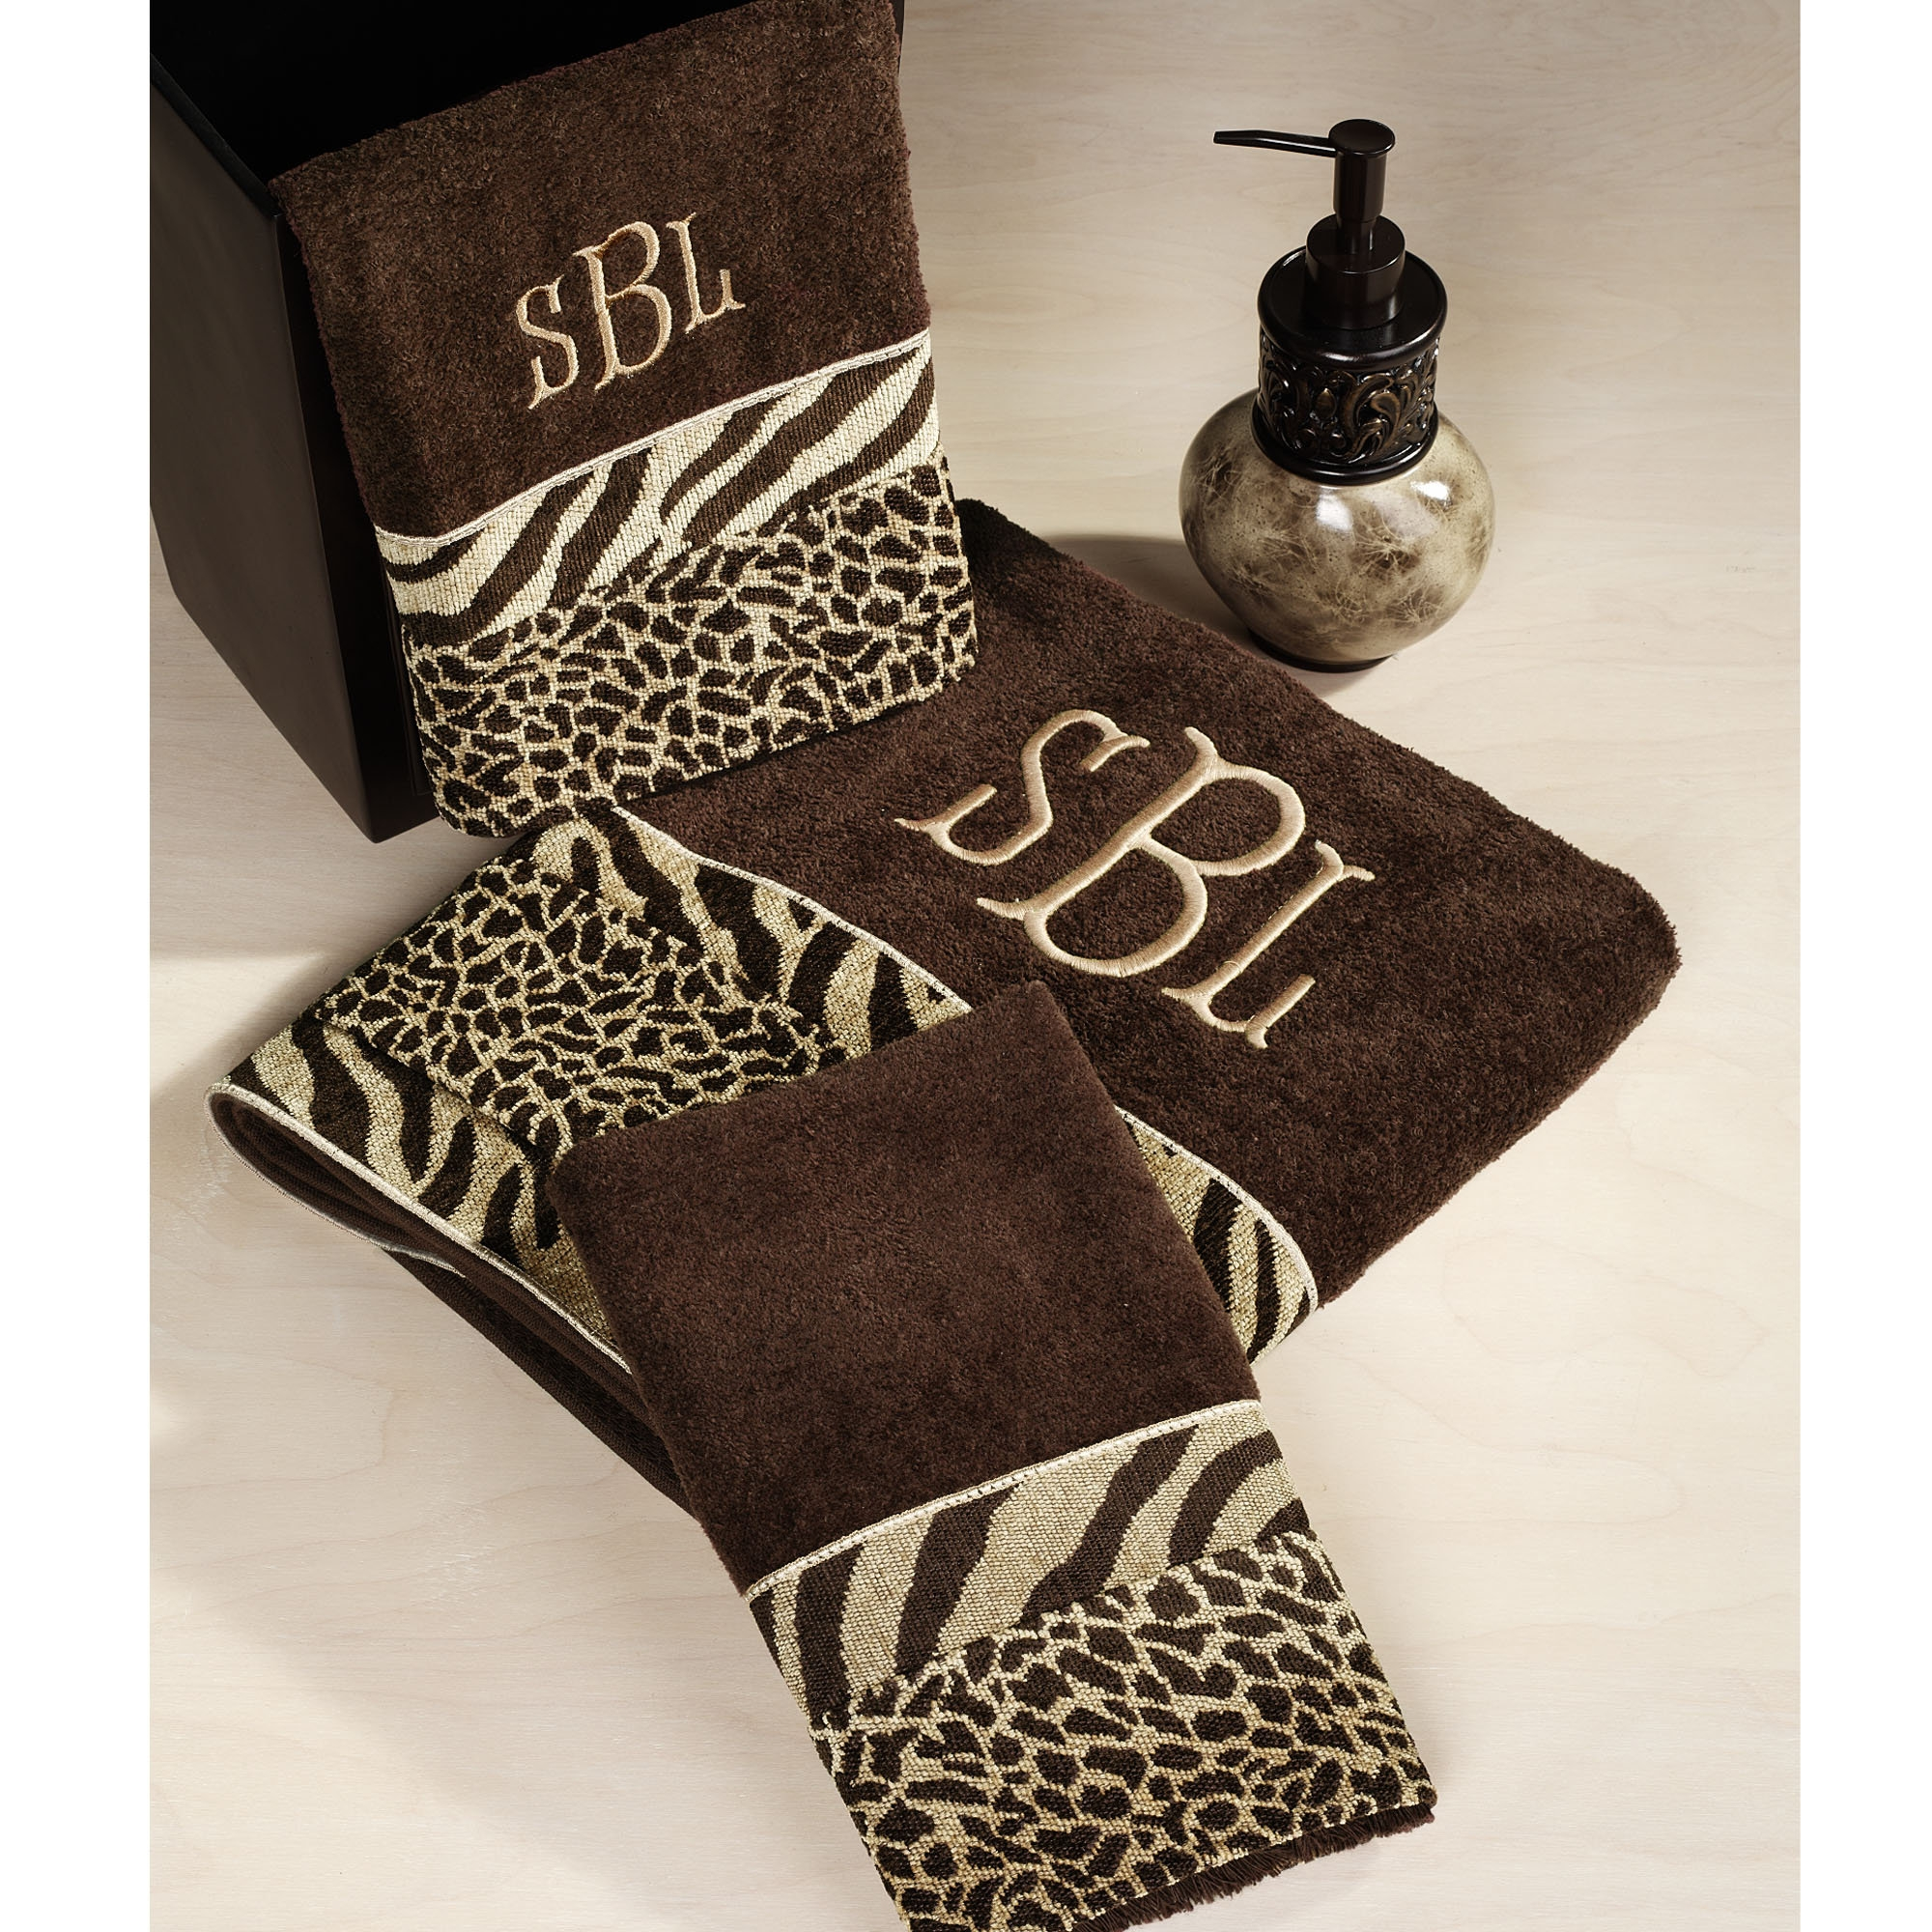 Zebra Print Bathroom Mats